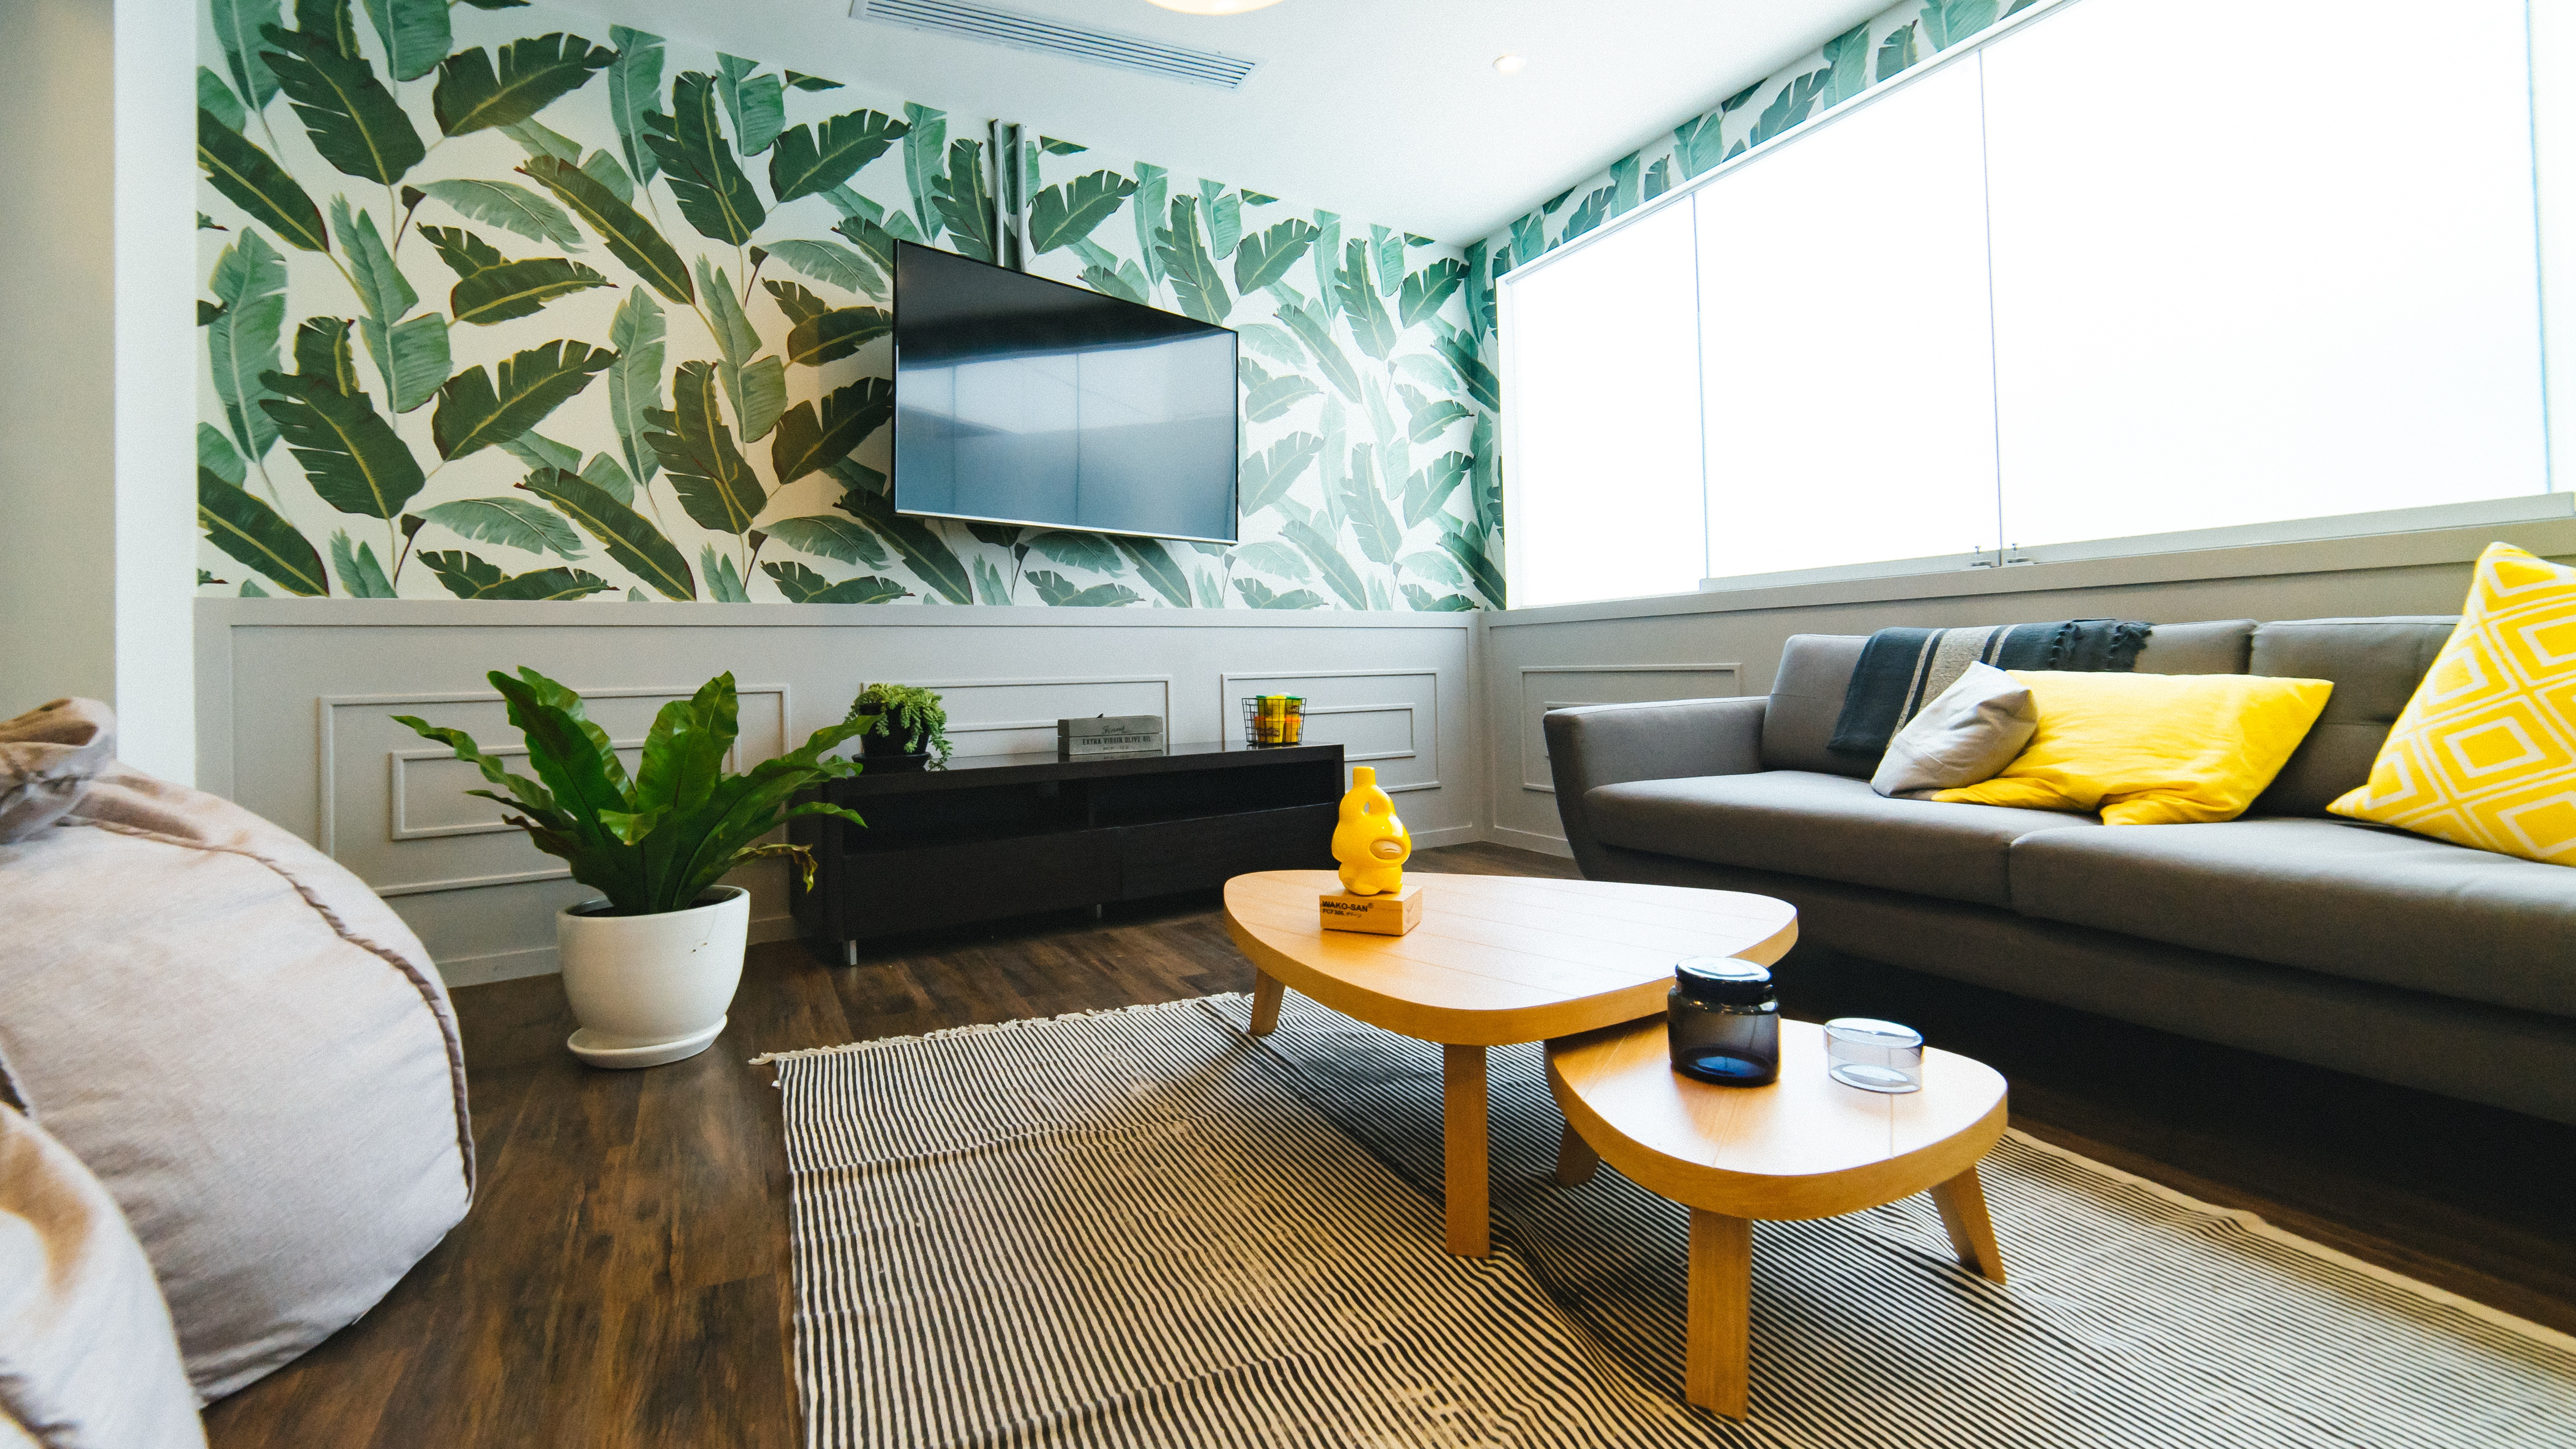 tropical home interior with house plants, bright colours and natural patterned wallpaper